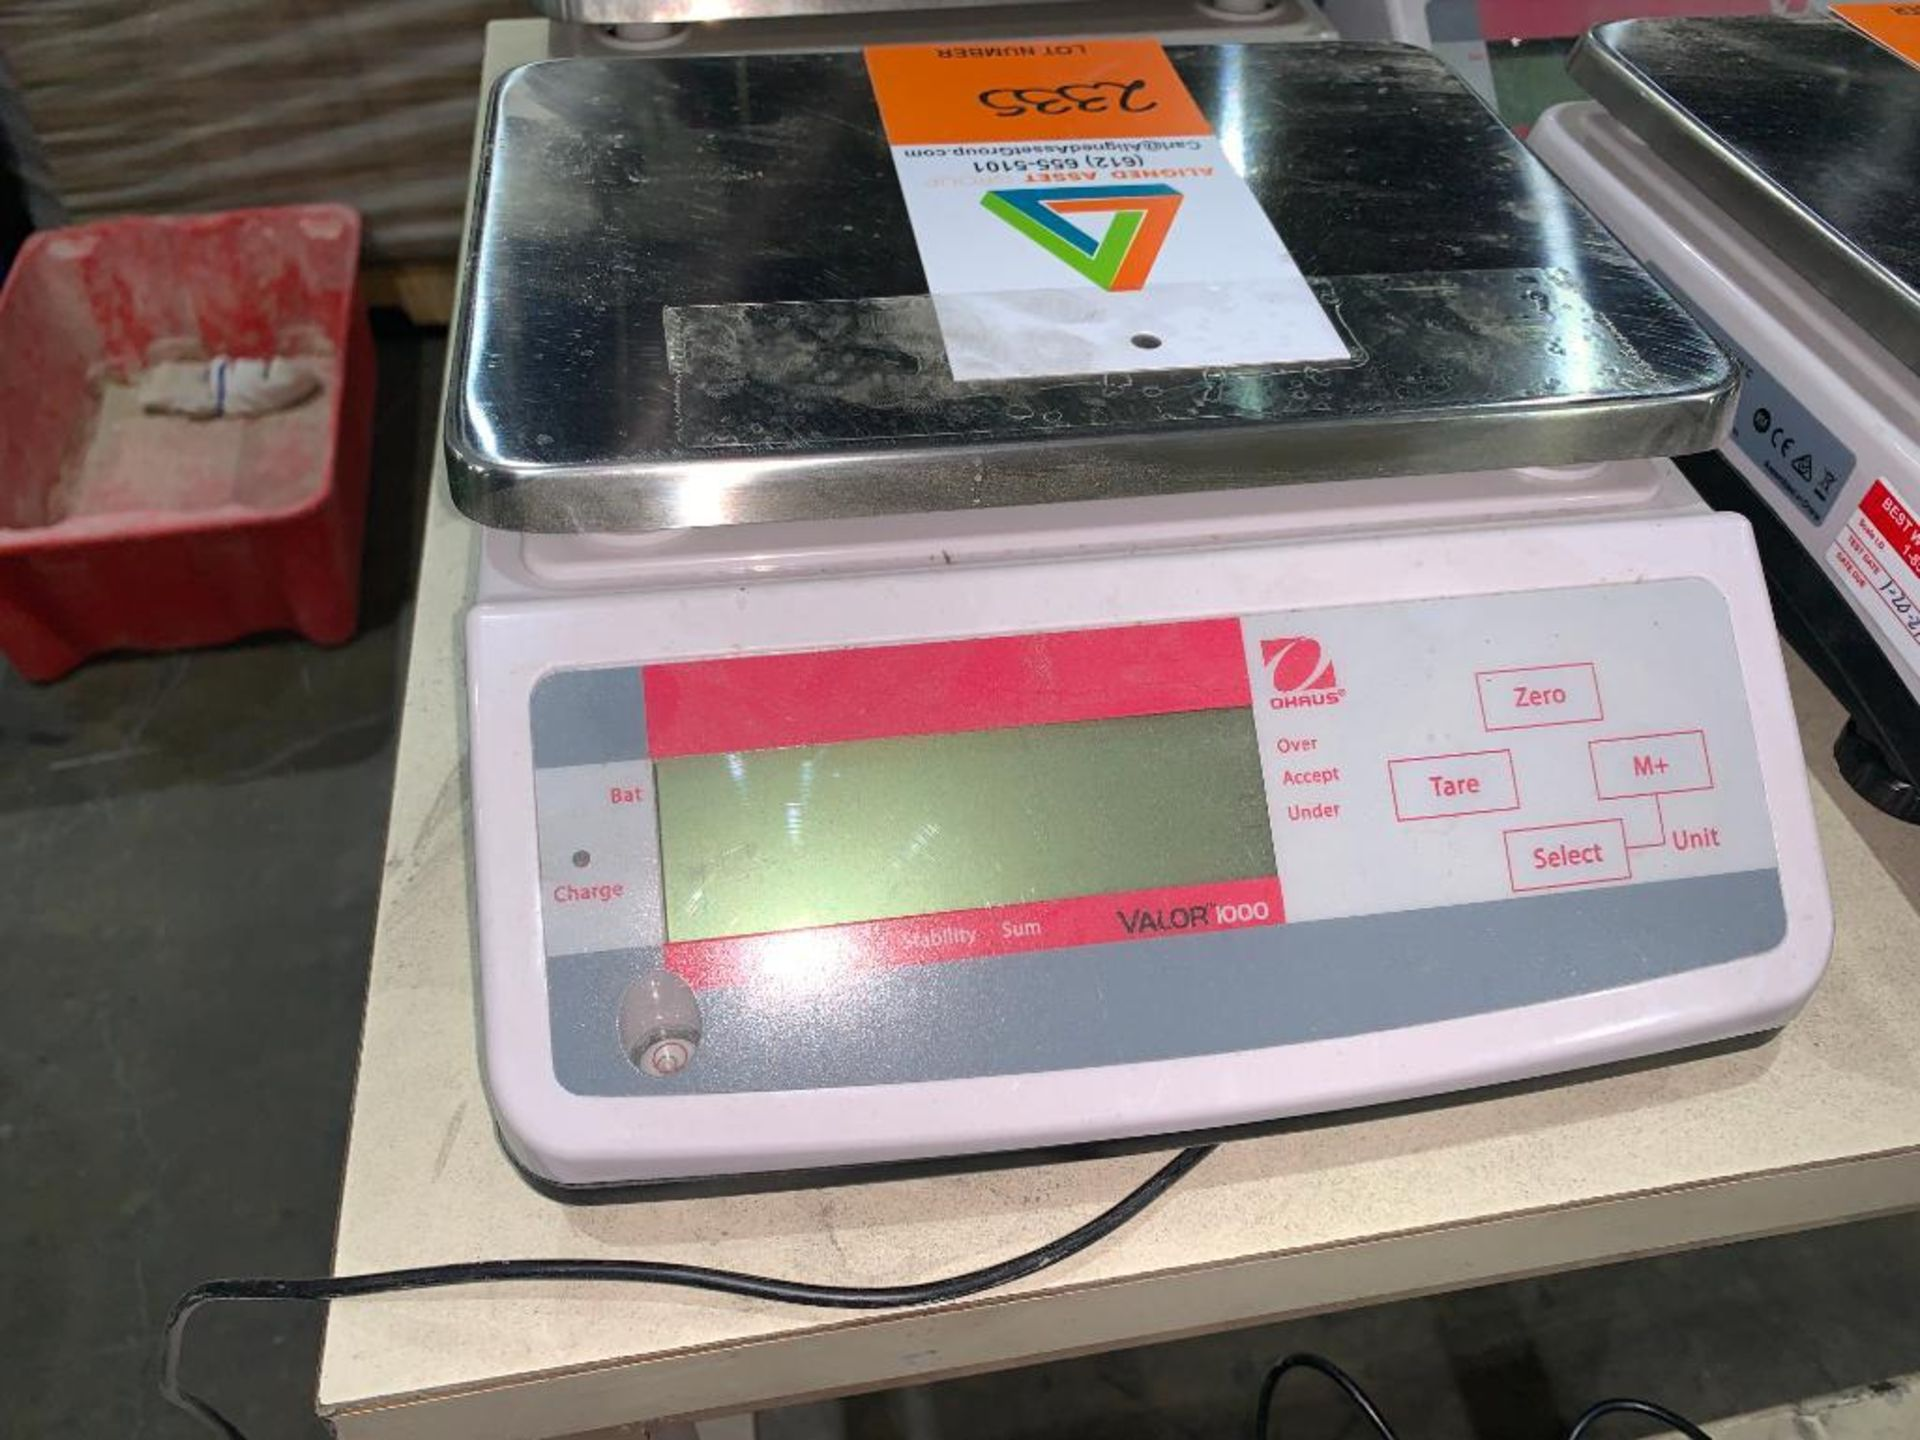 OHaus digital scale - Image 2 of 3